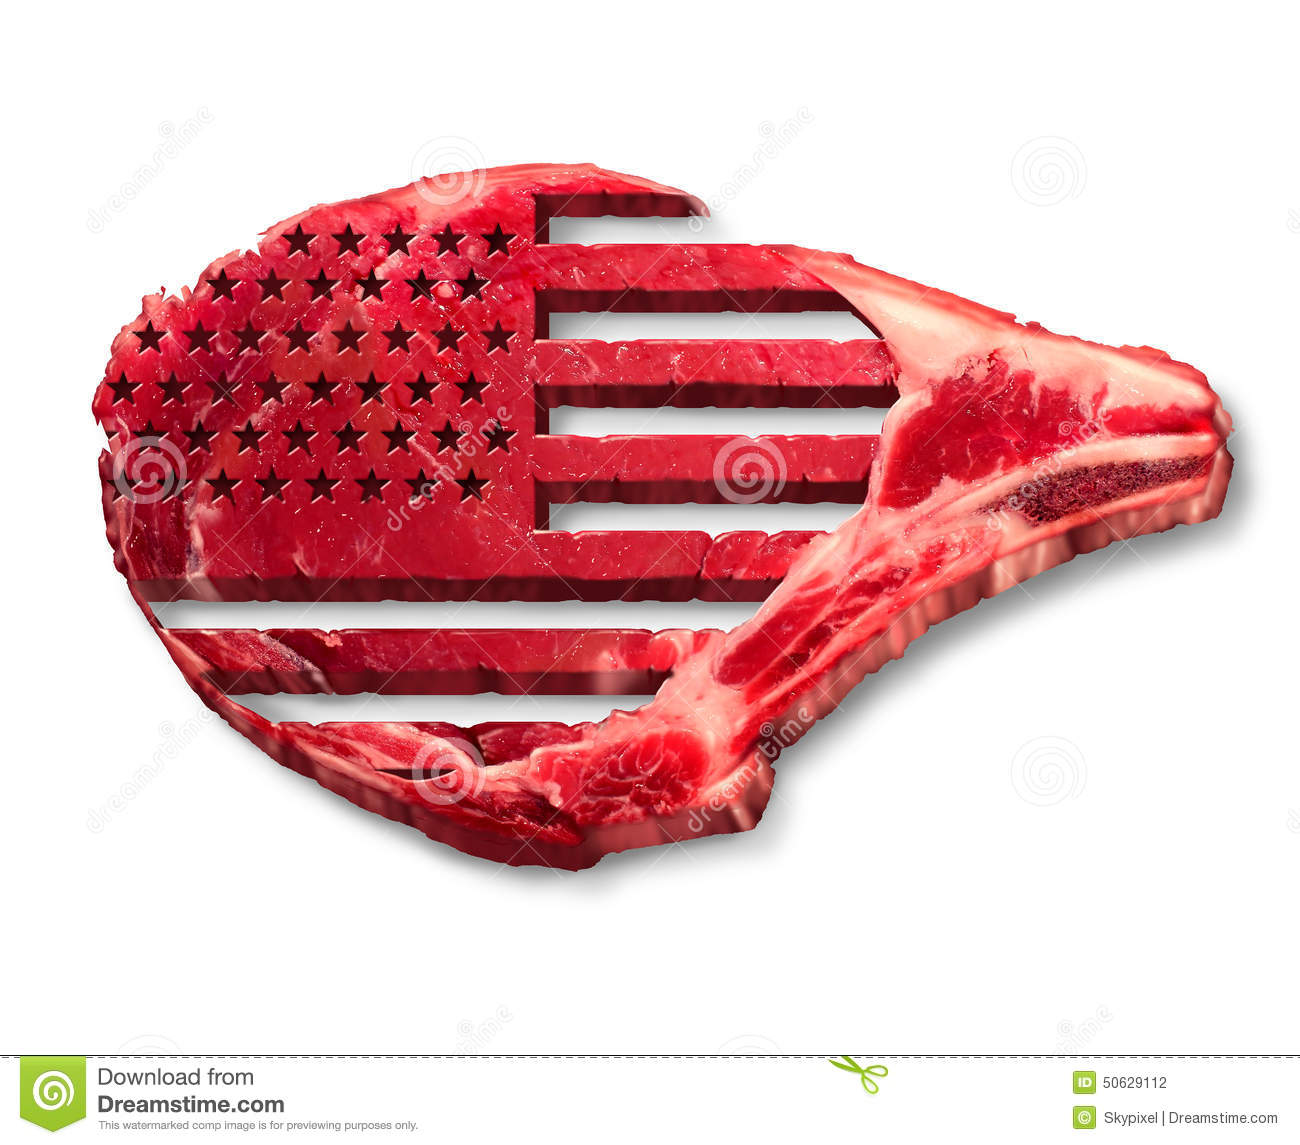 An analysis of american beef consumption in united states